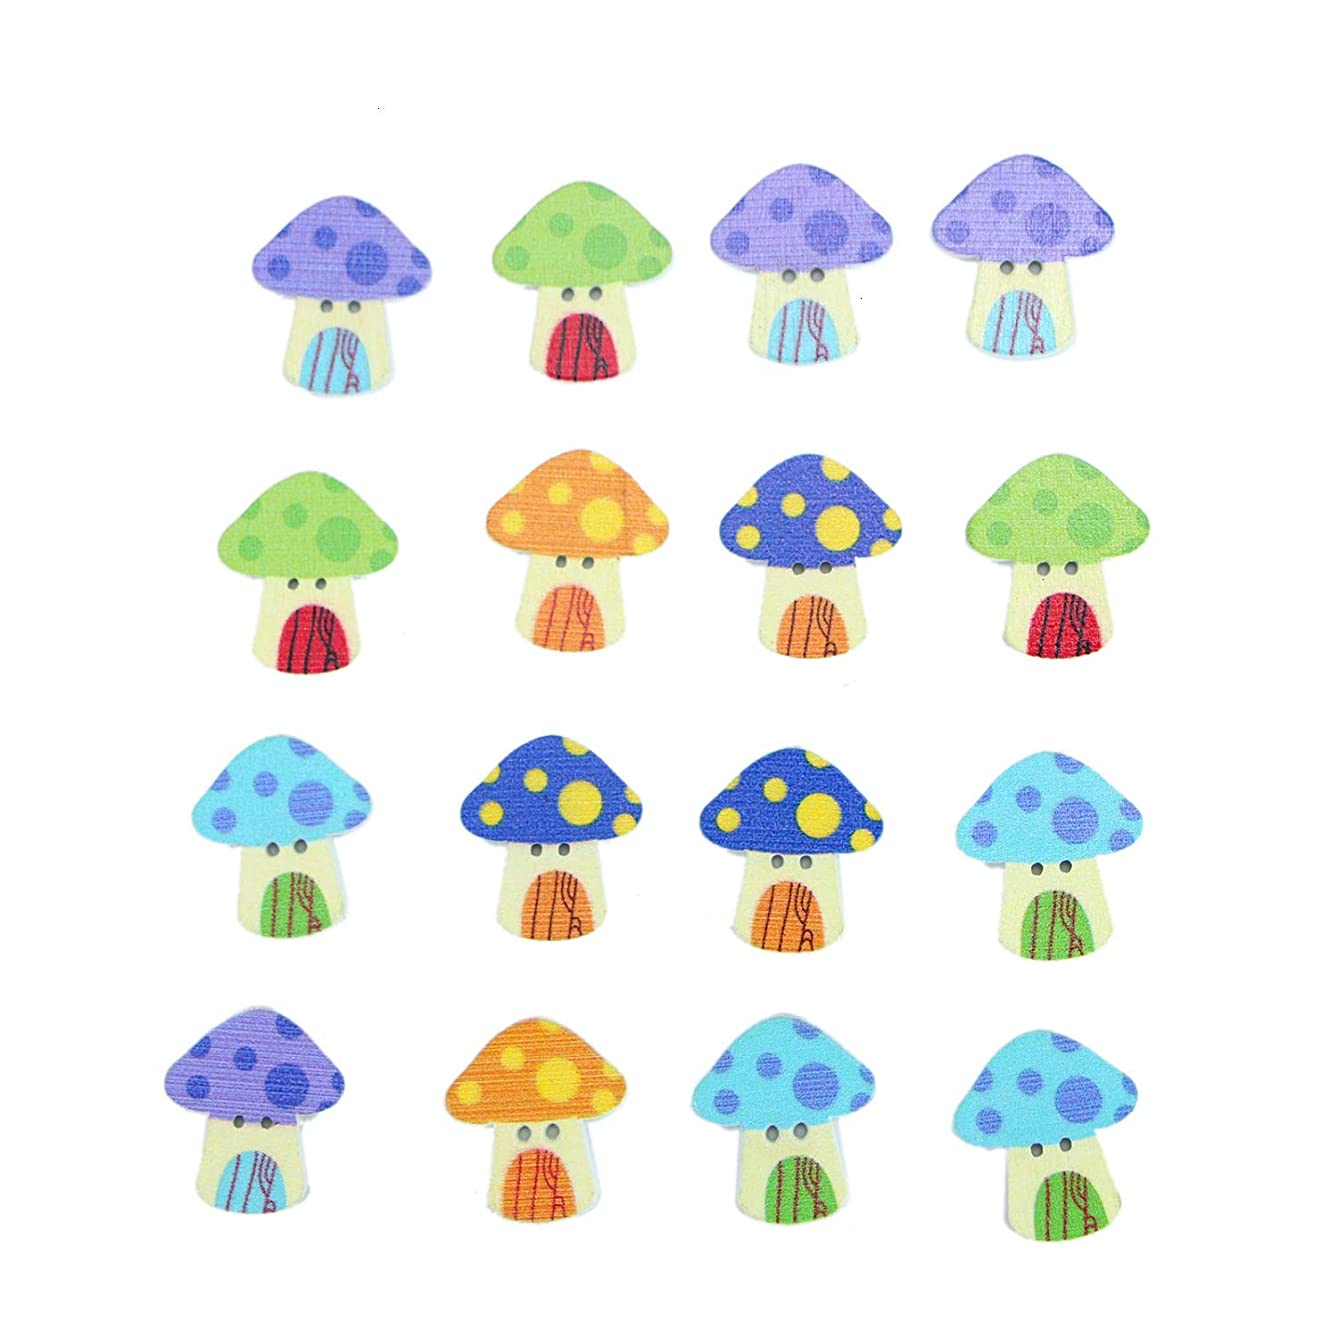 Monrocco 100 pcs Cute Mushroom House Buttons with 2 Hole Cartoon Pattern Decorative Scrapbook Buttons